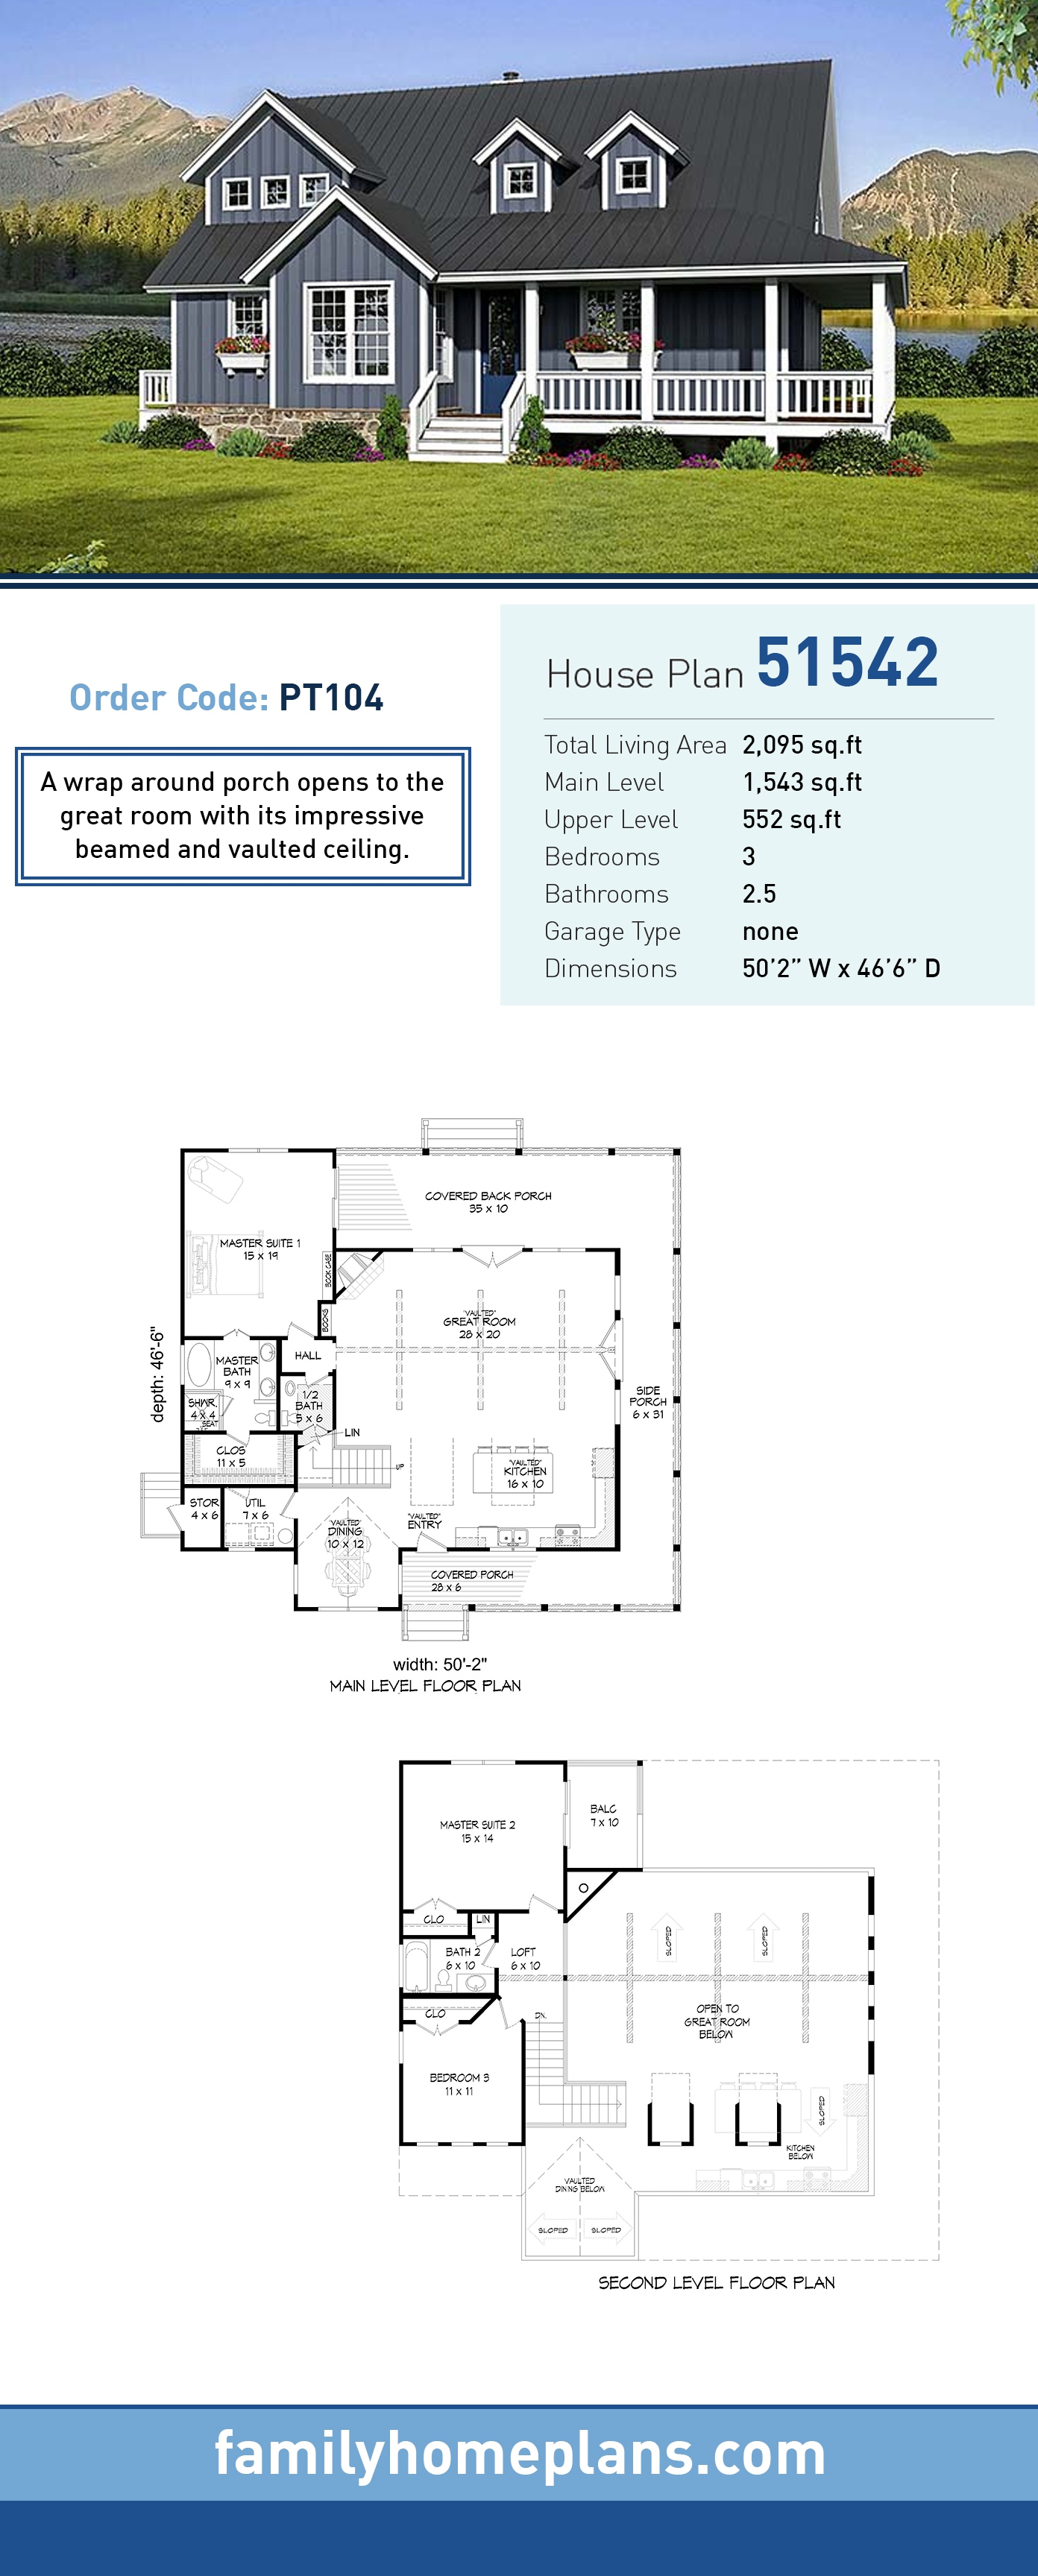 Cabin, Country, Southern, Traditional House Plan 51542 with 3 Beds, 3 Baths